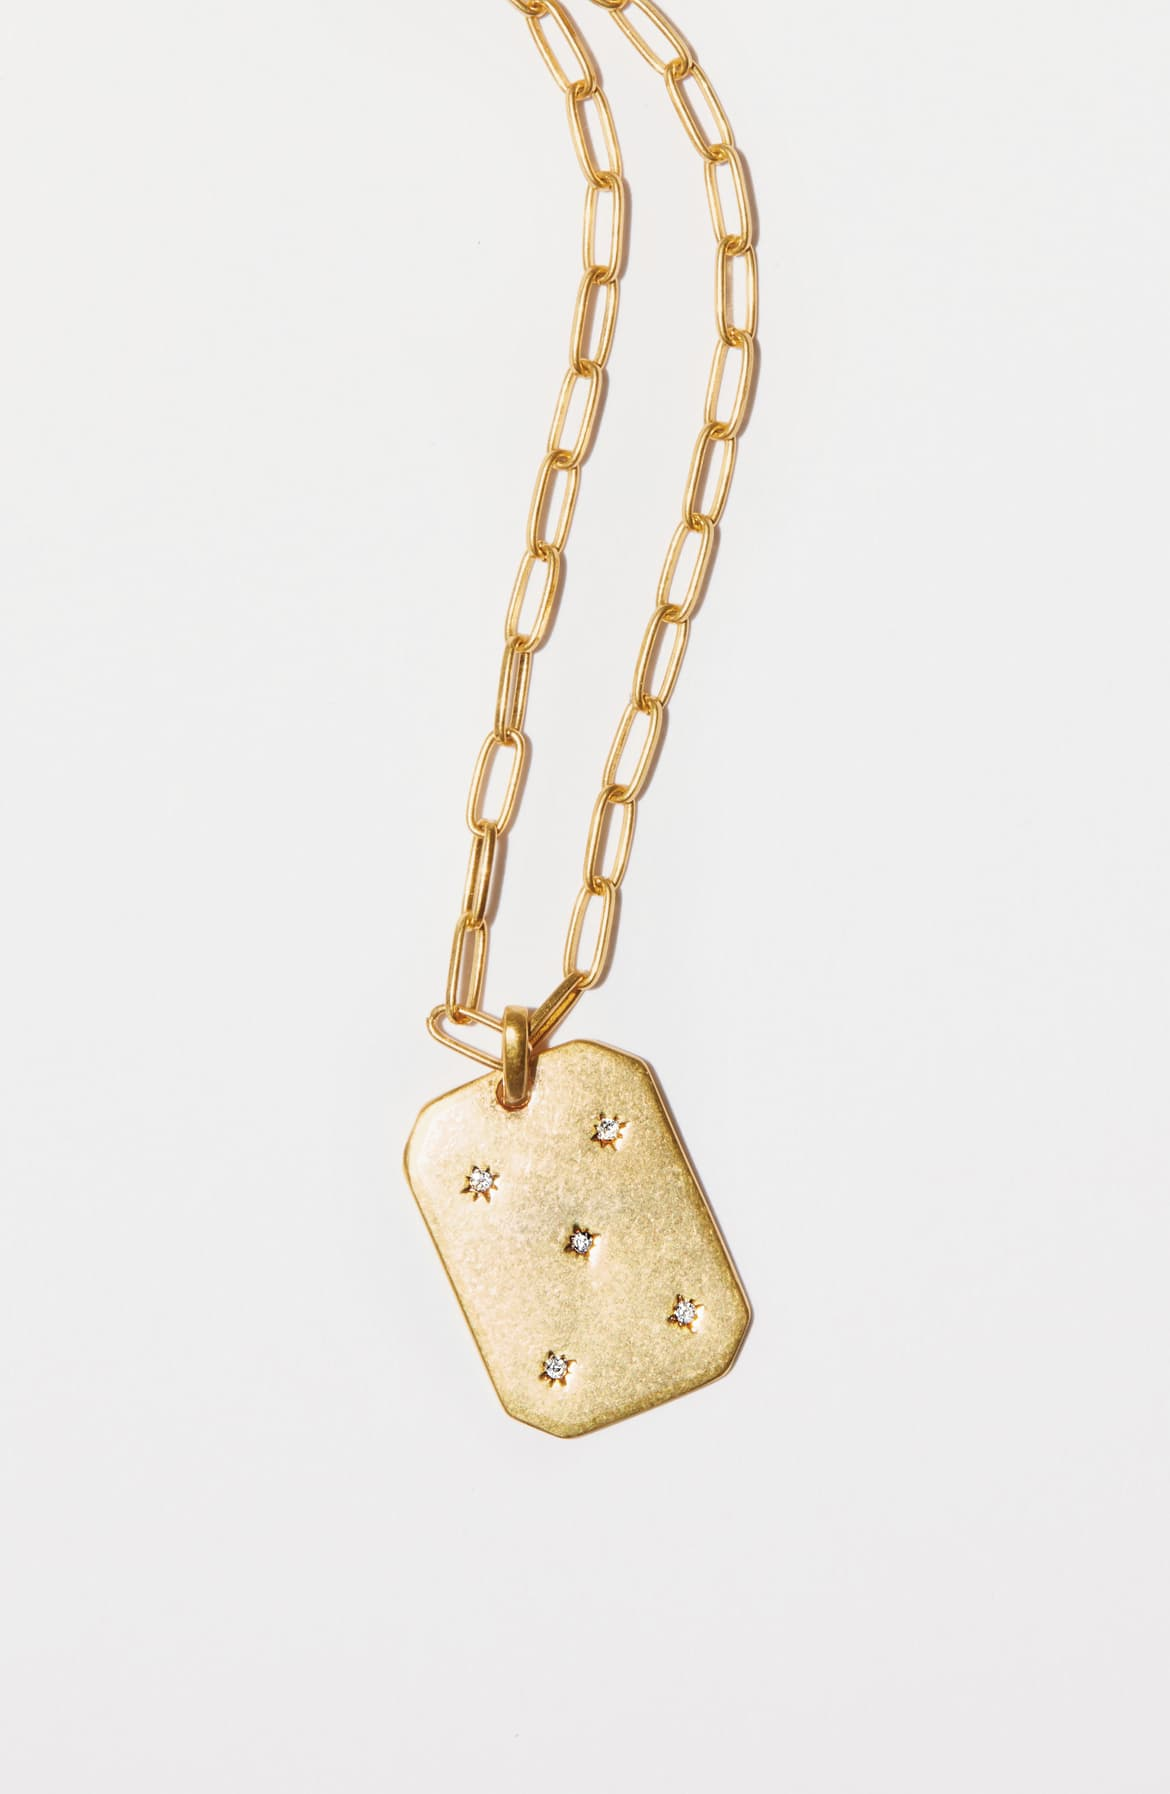 "<p>Shine bright with this vintagey necklace featuring a dog-tag pendant set with pavé sparkle that's dangled from a modern open-link chain. $32.{&nbsp;}<a  href=""https://shop.nordstrom.com/s/madewell-twinkle-pave-pendant-necklace/5440174/full?origin=category-personalizedsort&breadcrumb=Home%2FHoliday%20Gifts%2FGifts%20for%20Her&color=vintage%20gold"" target=""_blank"" title=""https://shop.nordstrom.com/s/madewell-twinkle-pave-pendant-necklace/5440174/full?origin=category-personalizedsort&breadcrumb=Home%2FHoliday%20Gifts%2FGifts%20for%20Her&color=vintage%20gold"">Shop it{&nbsp;}</a>(Image: Nordstrom){&nbsp;}</p>"